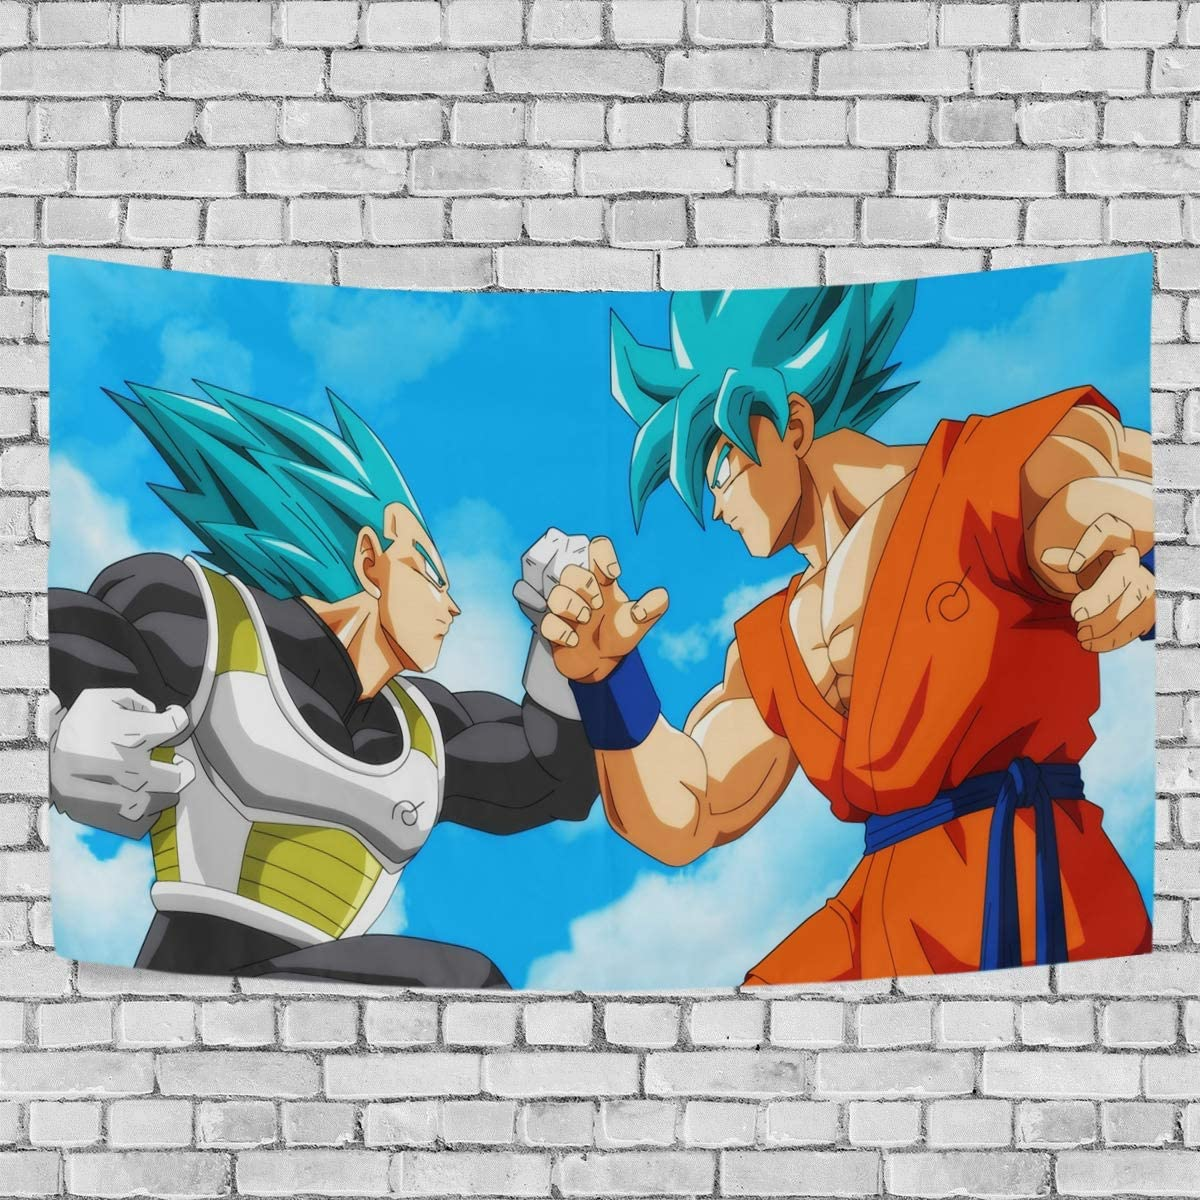 FASHIONDIY Dragon Ball Vegeta Goku Tapestry Wall Hanging Decoration for Apartment Home Art Wall Tapestry for Bedroom Living Room Dorm Fashion 90 x 60 inches